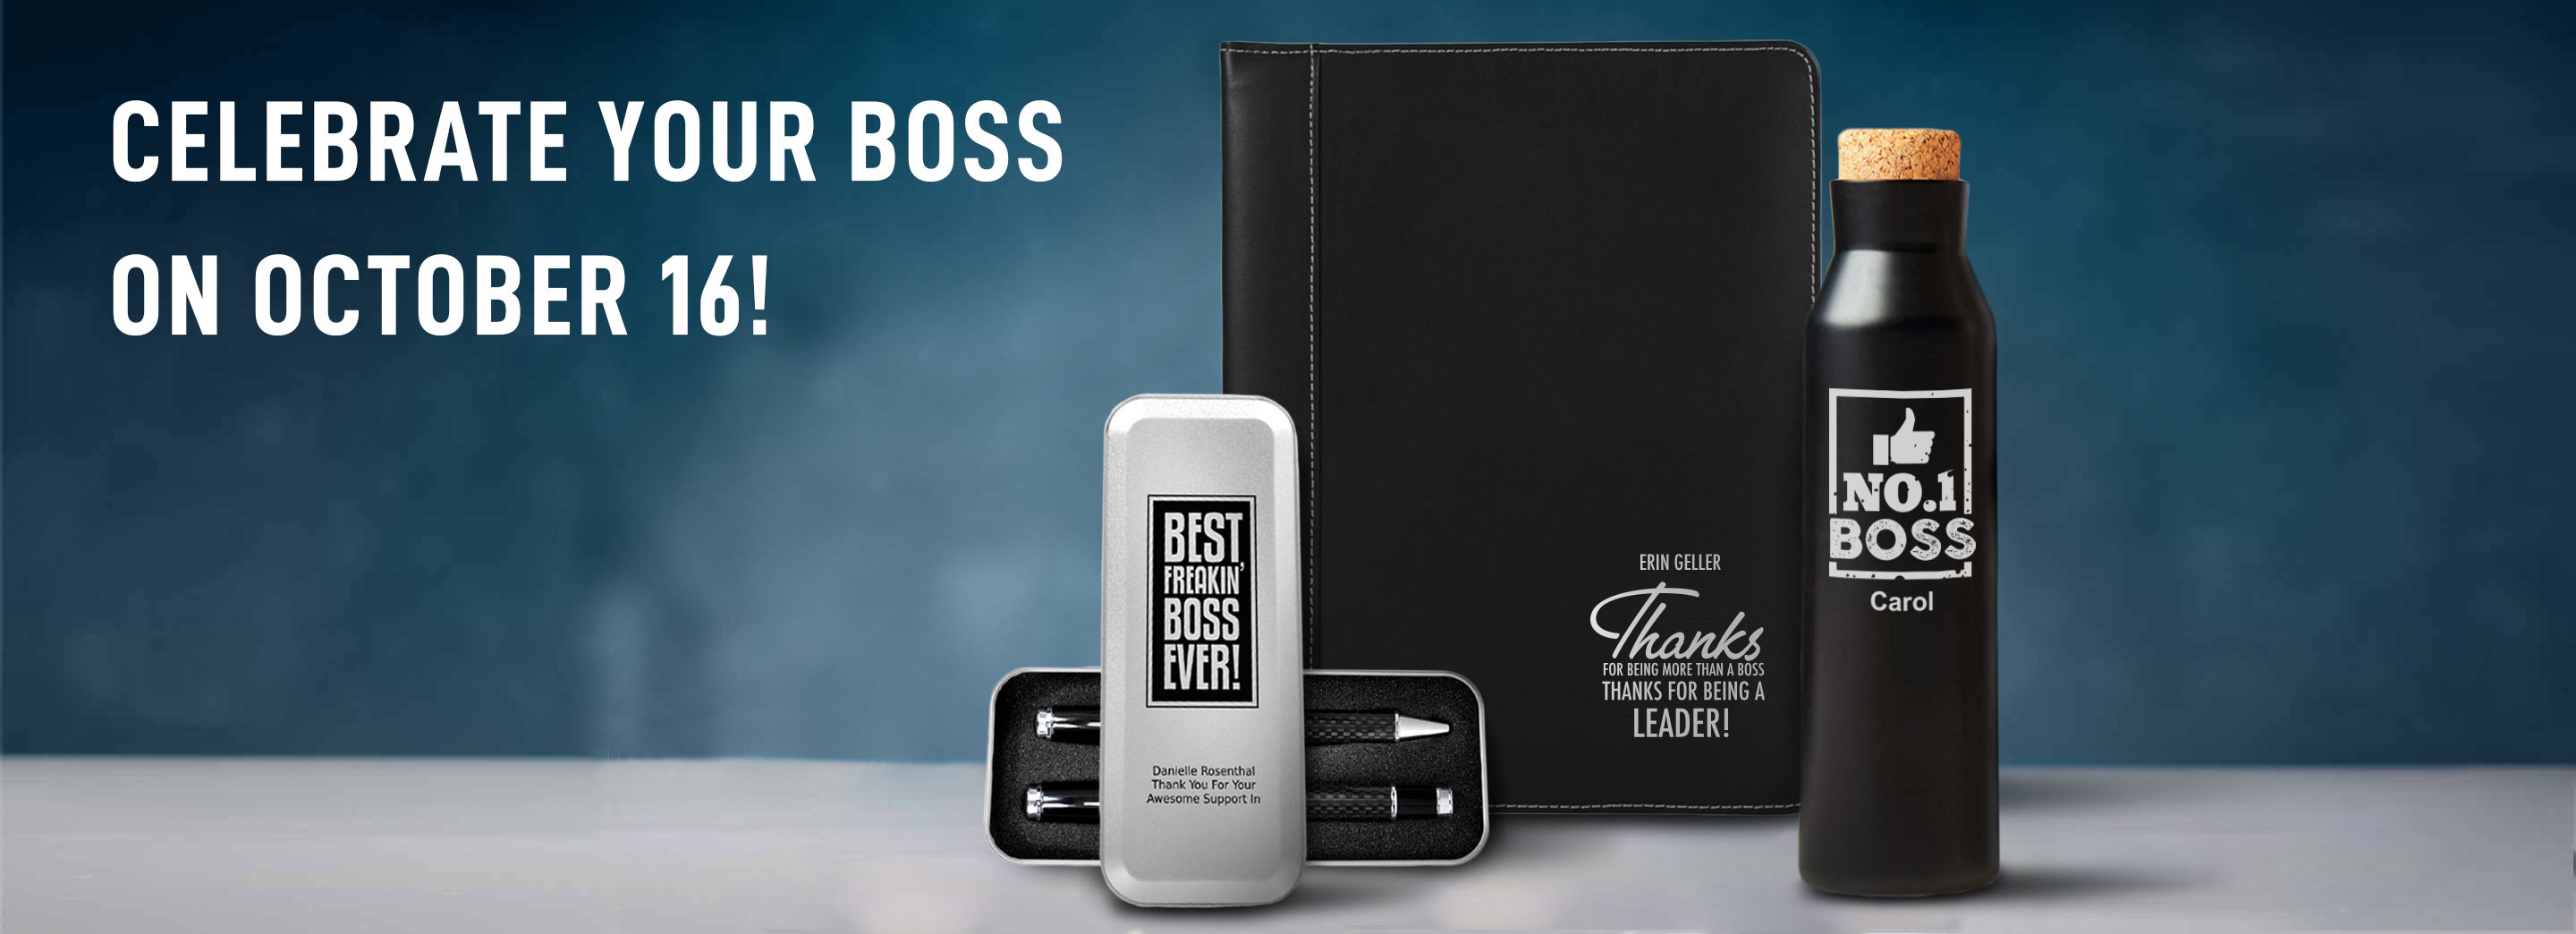 National Bosses Day Gifts From Baudville